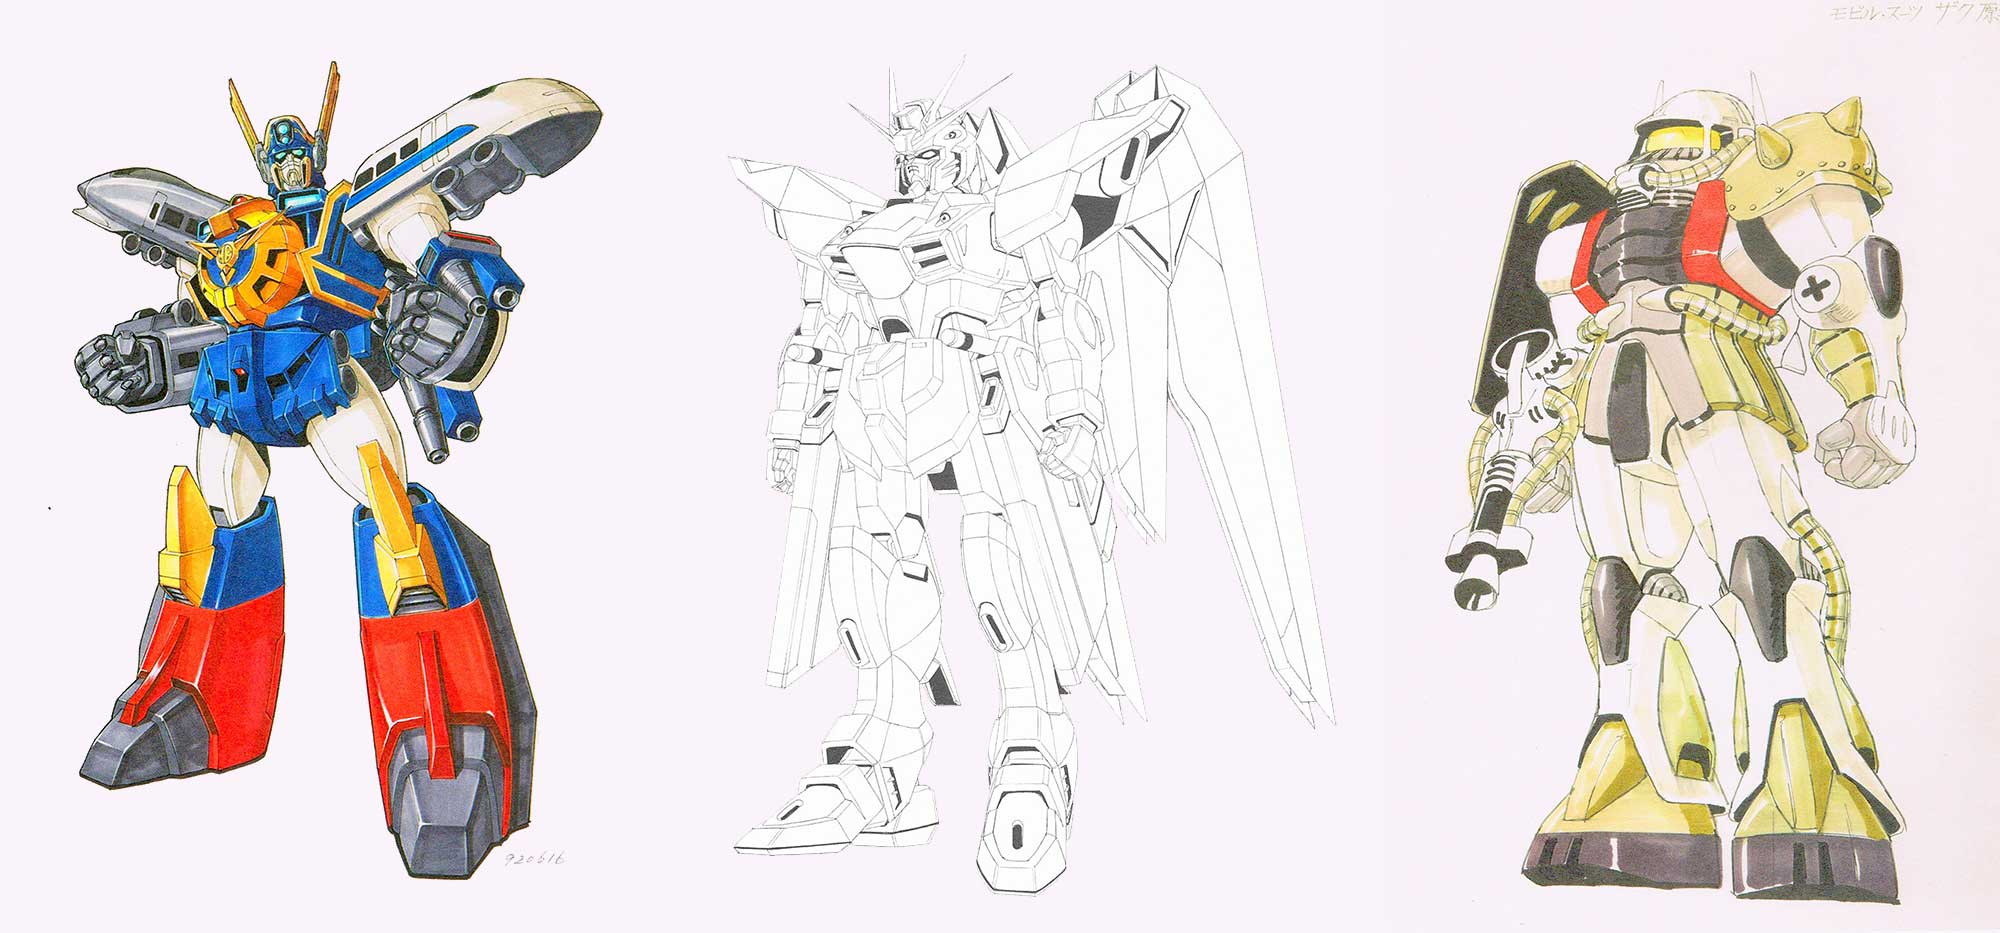 (from left) 'Preliminary model sheet: Mightgaine, front view' (1992), 'Final model sheet: Freedom Gundam, front view' (c.2003), 'First model sheet: Zaku' (1978) | © SUNRISE INC.; © SOTSU AGENCY, SUNRISE INC